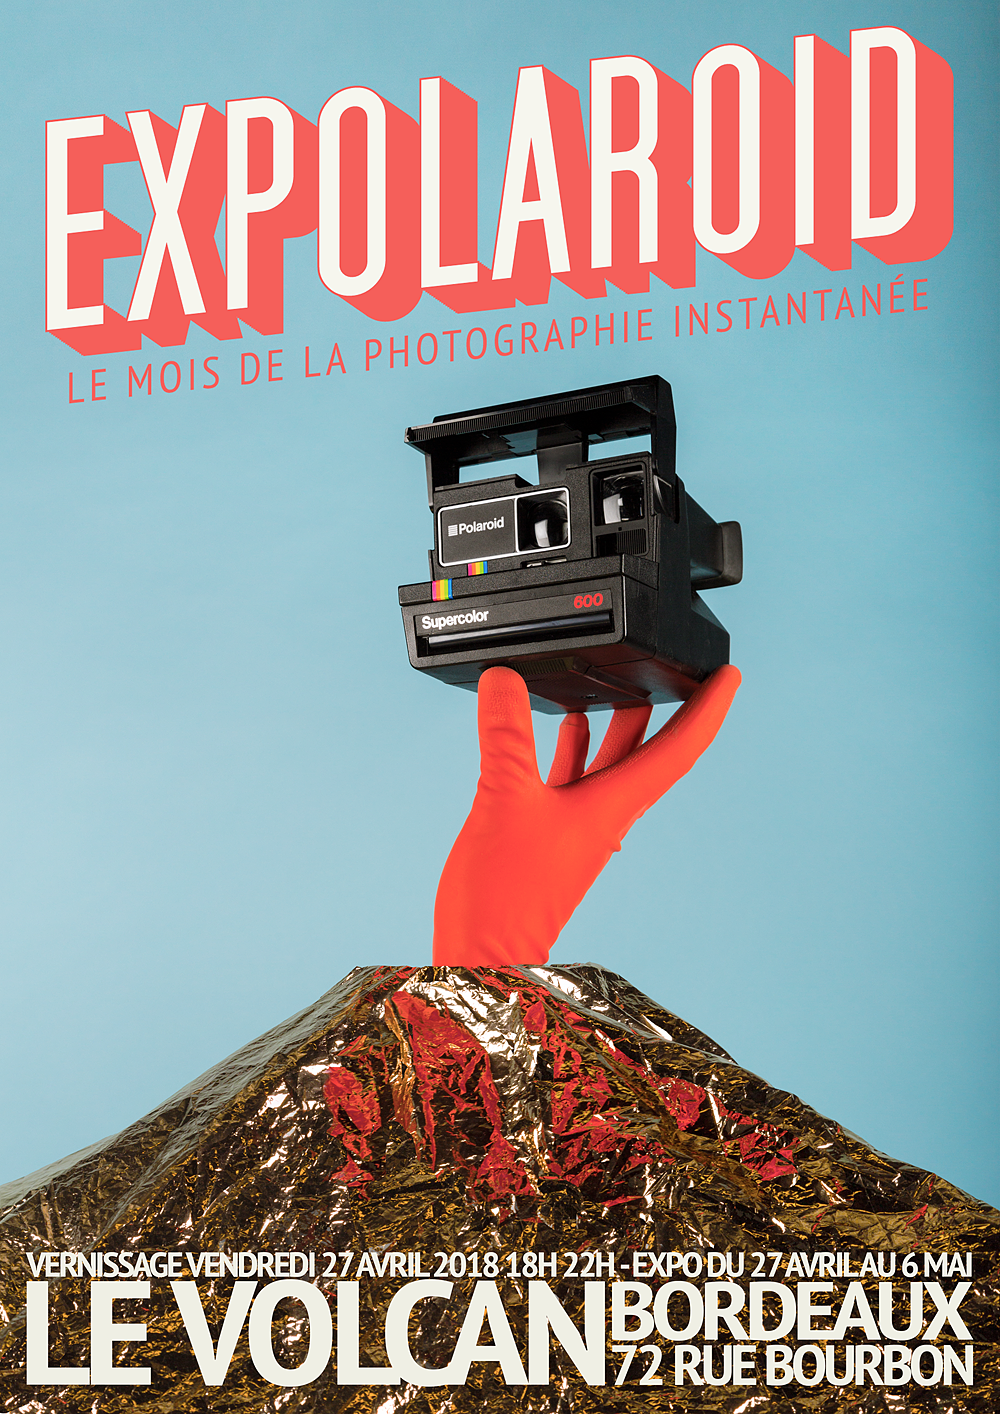 expolaroid bordeaux  - vernissage  vendredi 27 avril 18h au Volcan